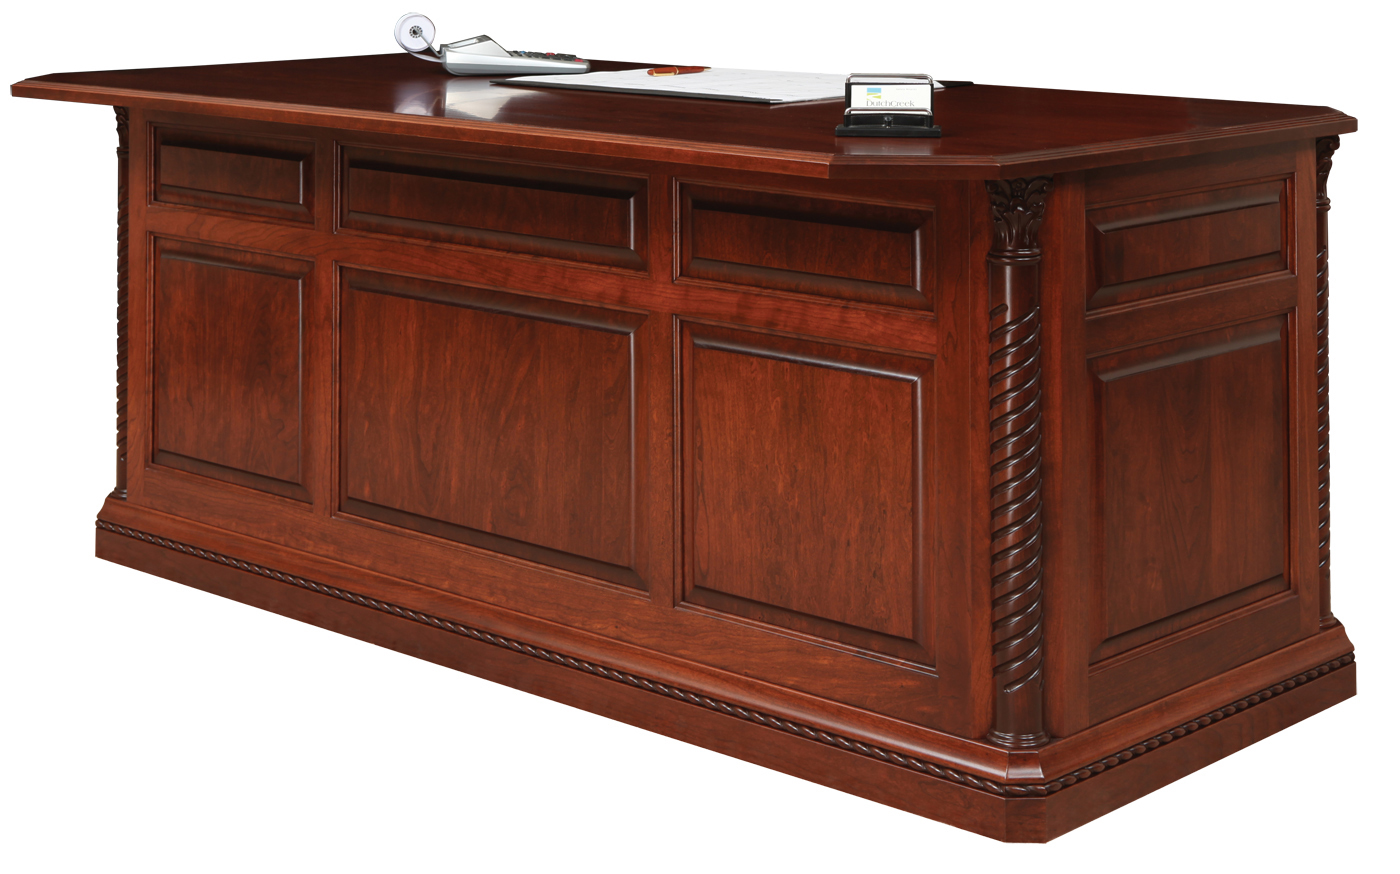 Lexington Executive Desk by Dutch Creek LEX-301